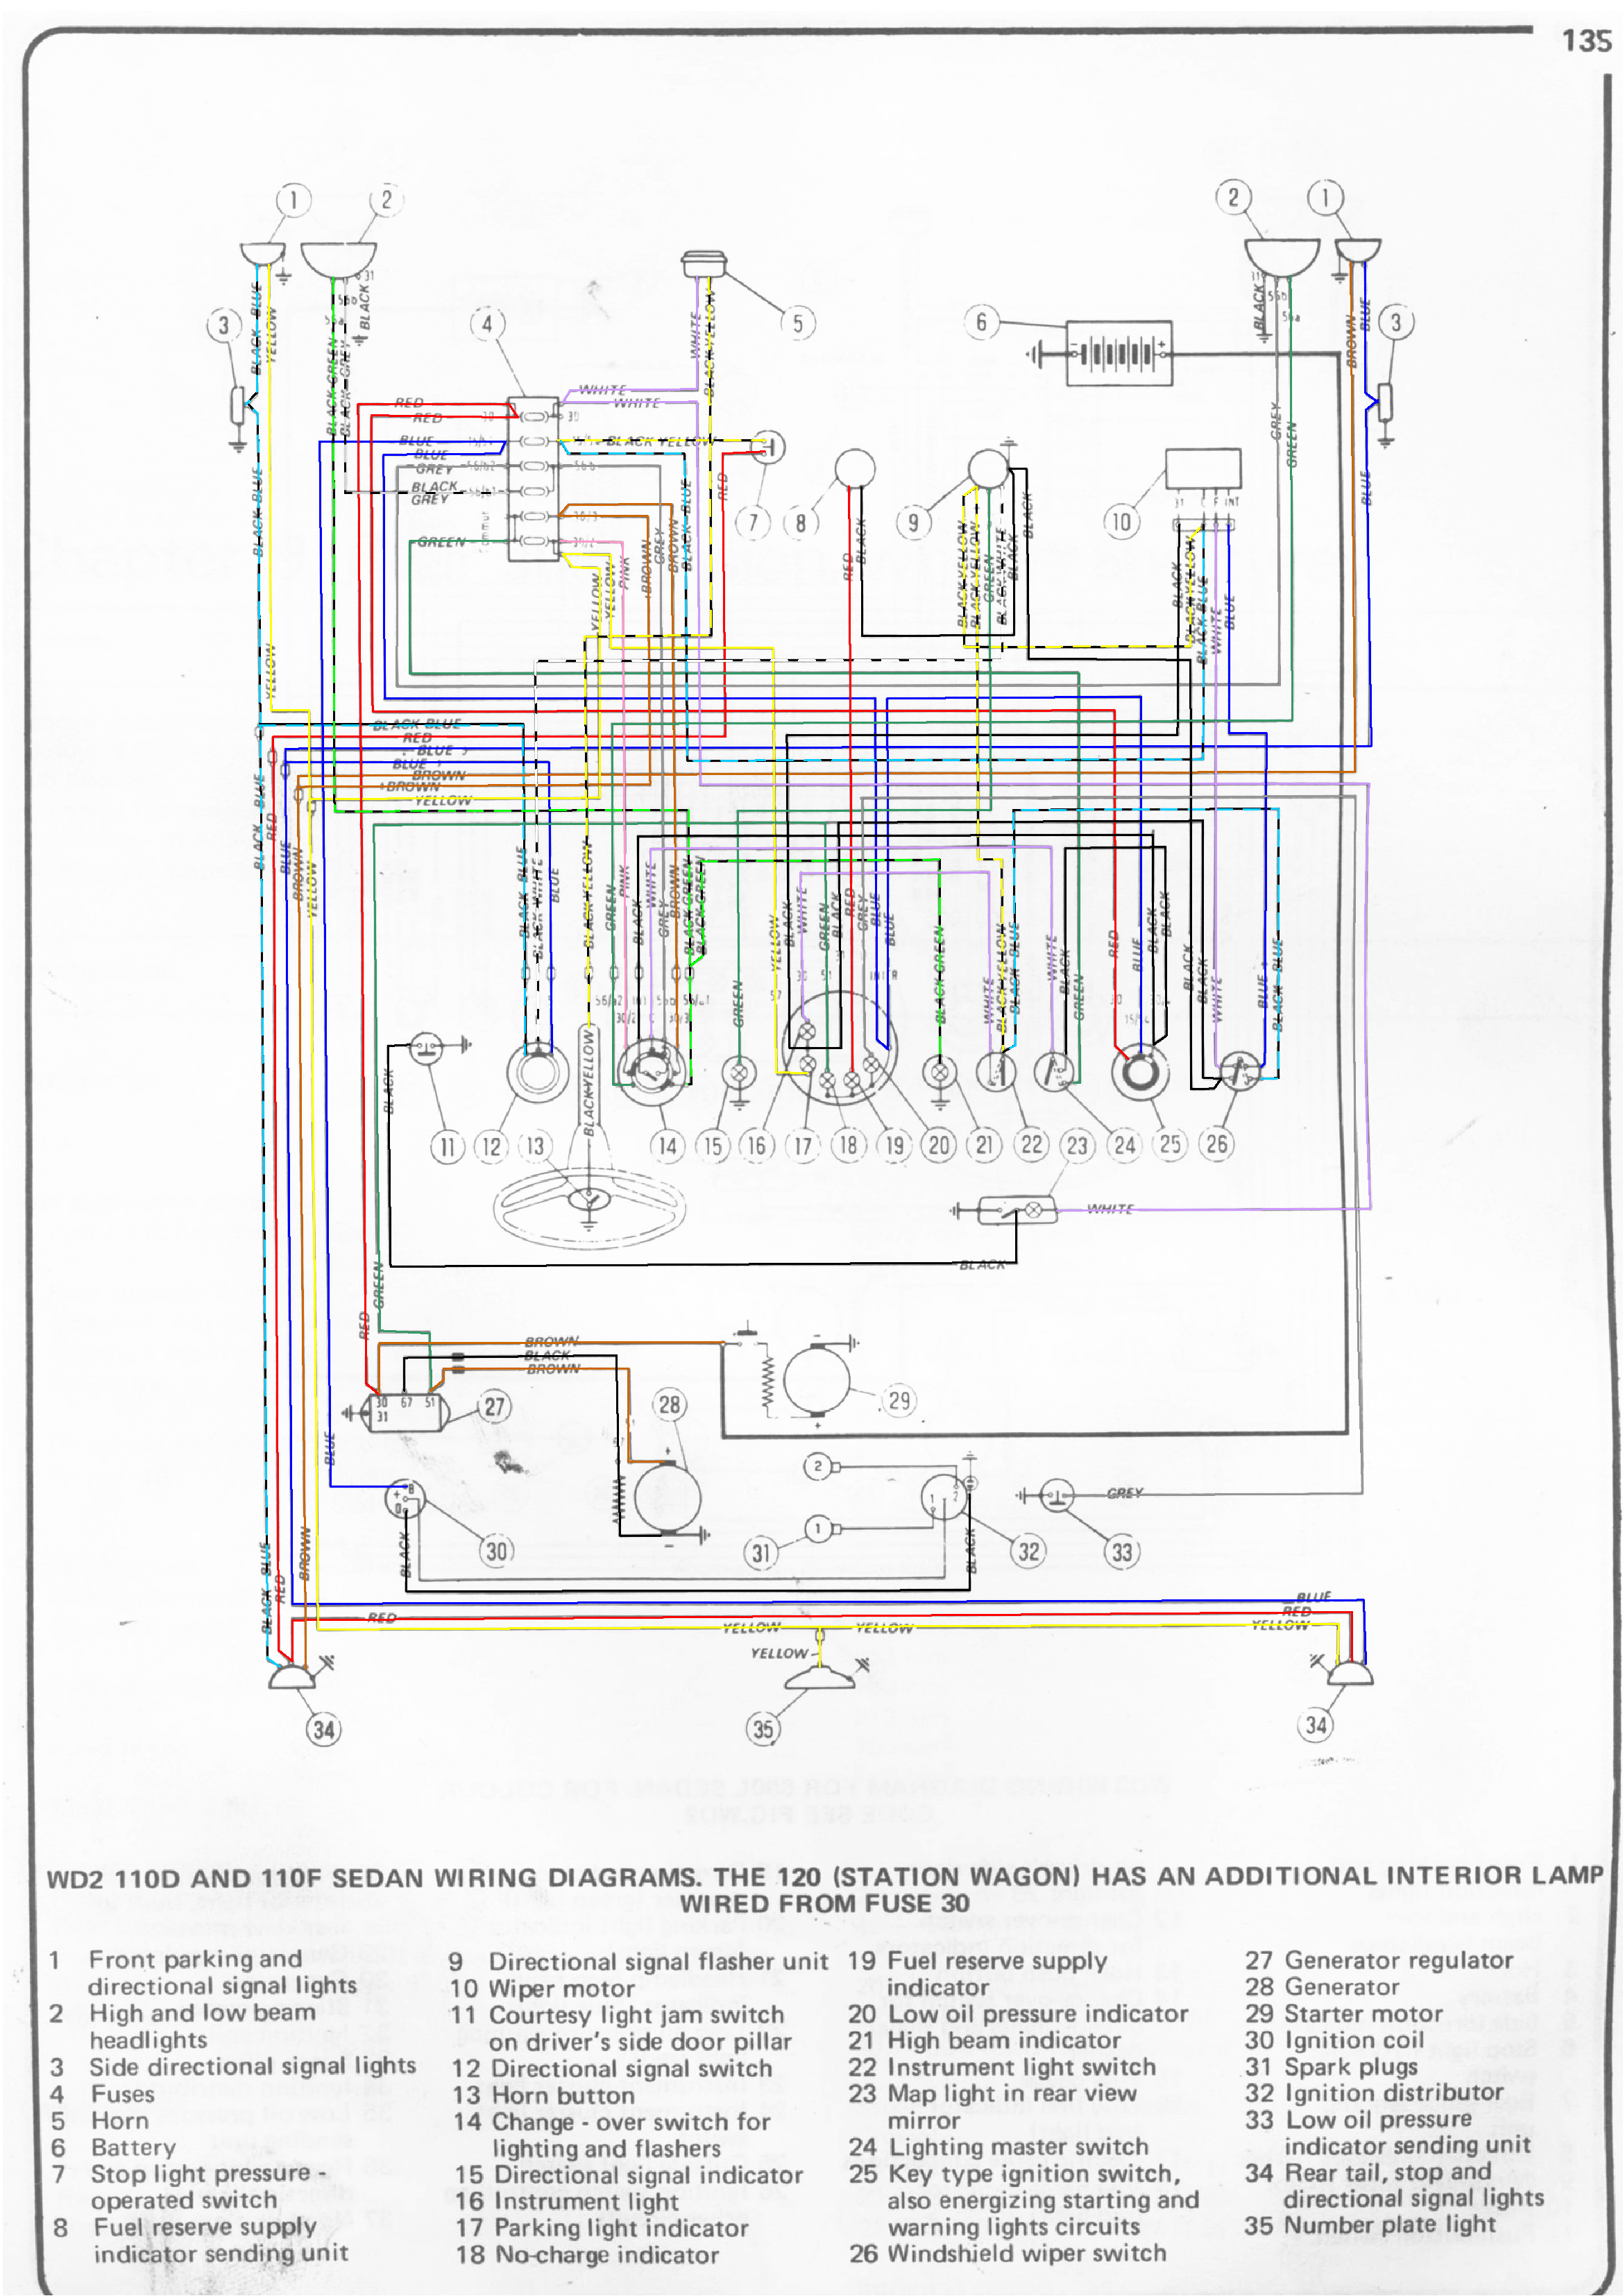 Fiat 128 Wiring Diagram - Diagram & Symbol Wiring layout-penny -  layout-penny.parliamoneassieme.itdiagram database